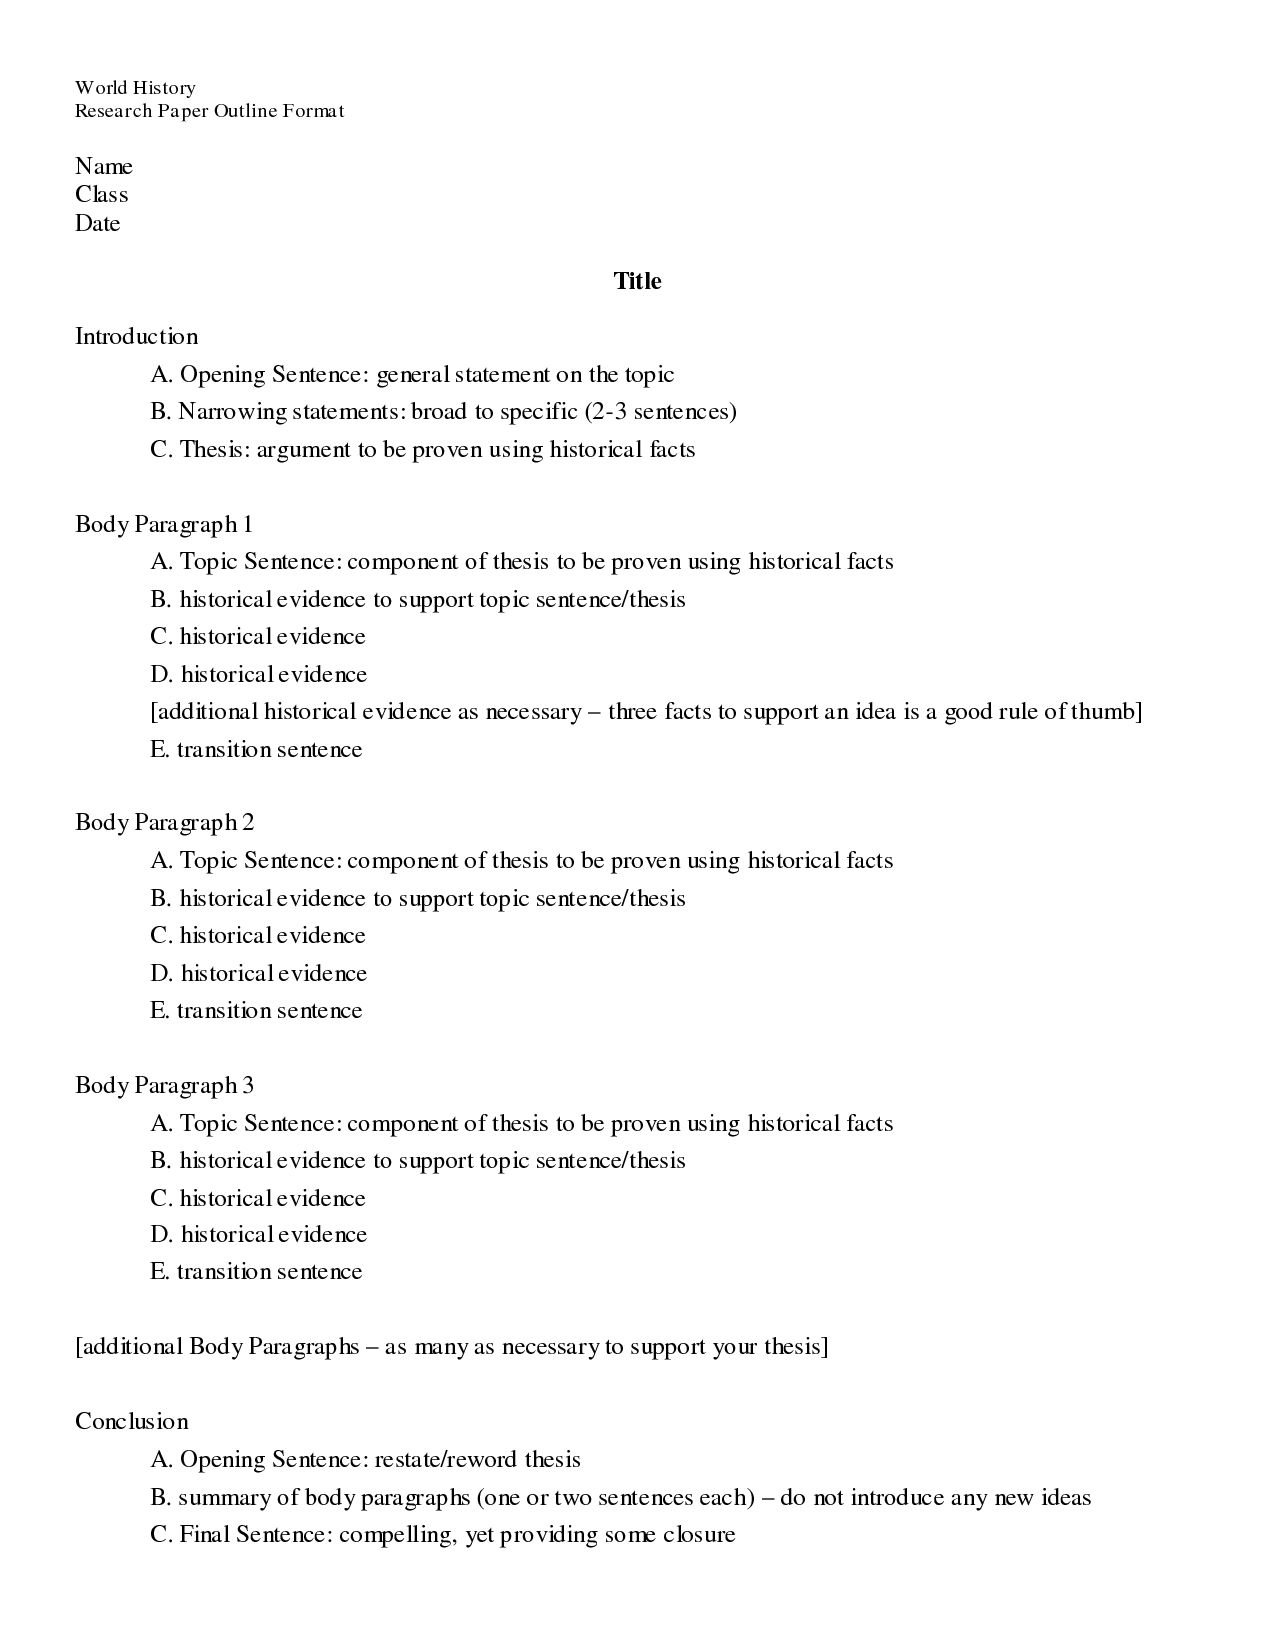 elementary research paper outline template | Outline Format - DOC ...